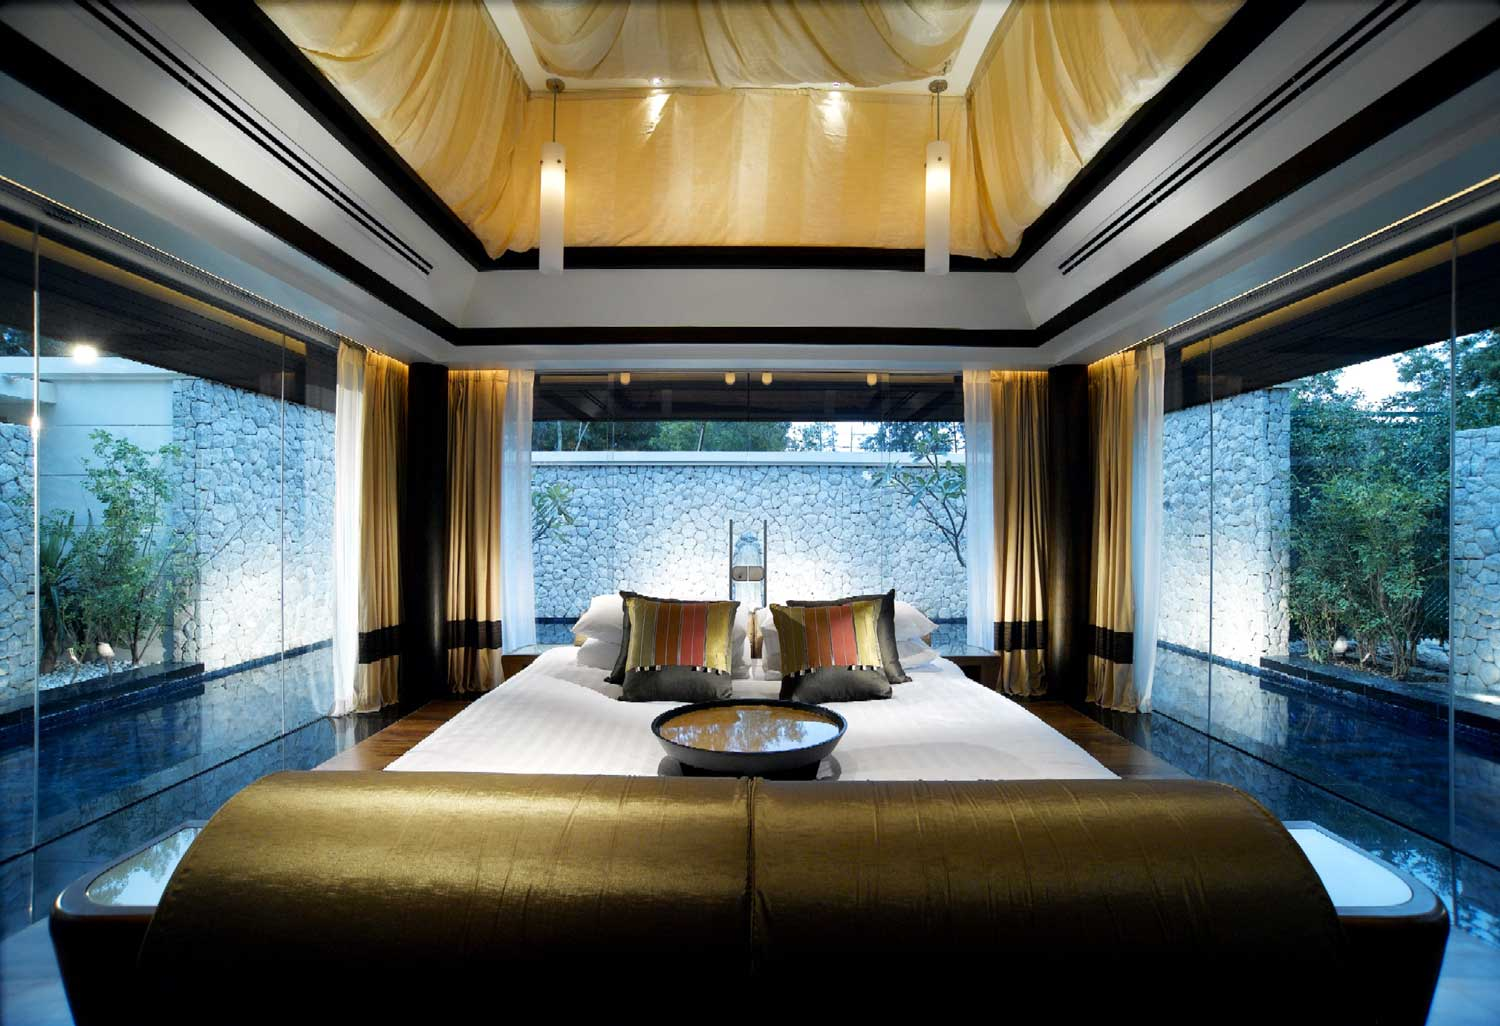 Amazing Luxury Villa Bedroom Design Home Interior Project